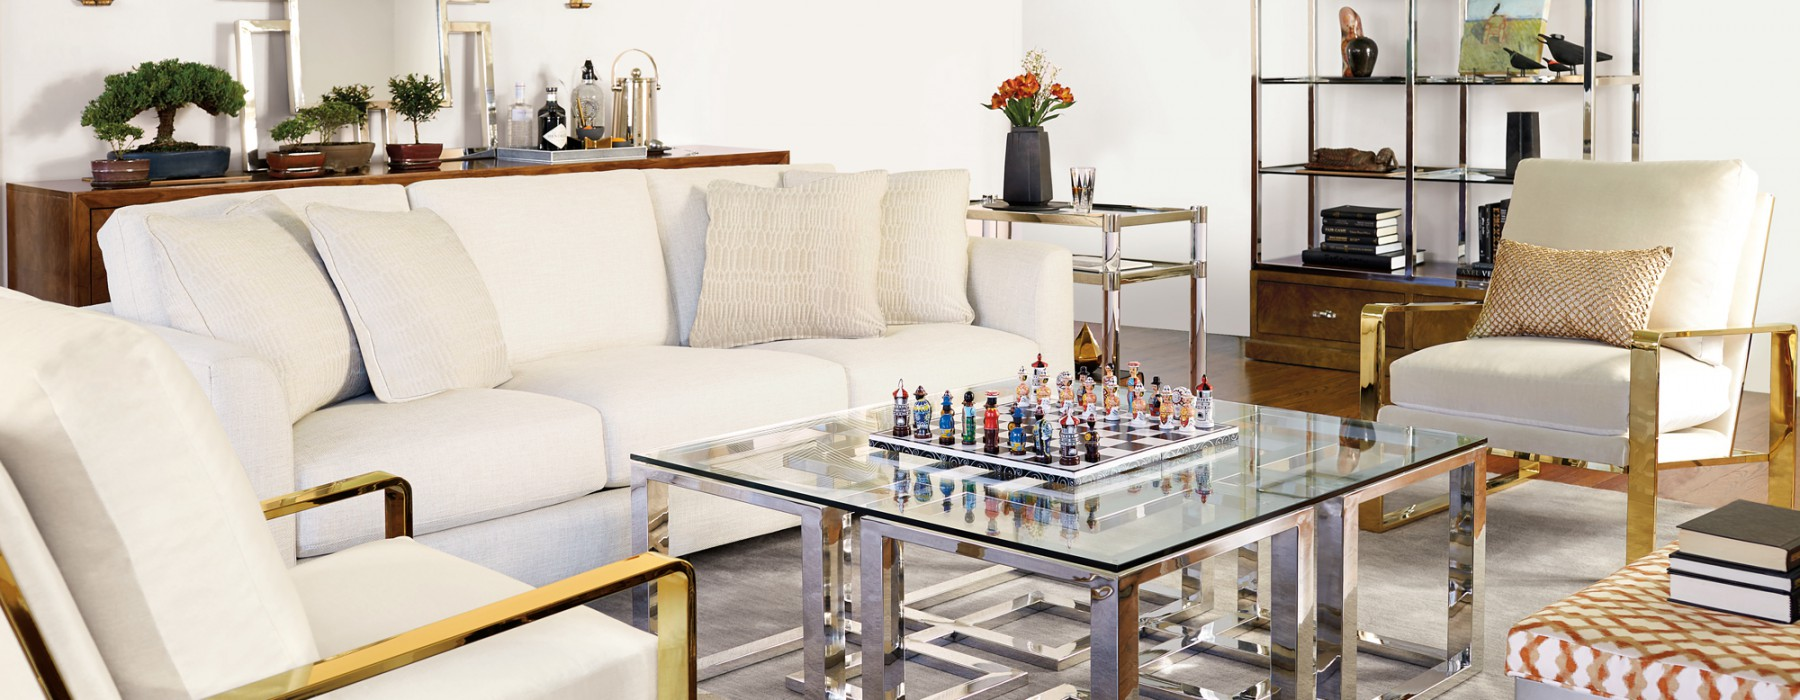 5 Clever Ways To Use Mirrored Furniture in Your Home